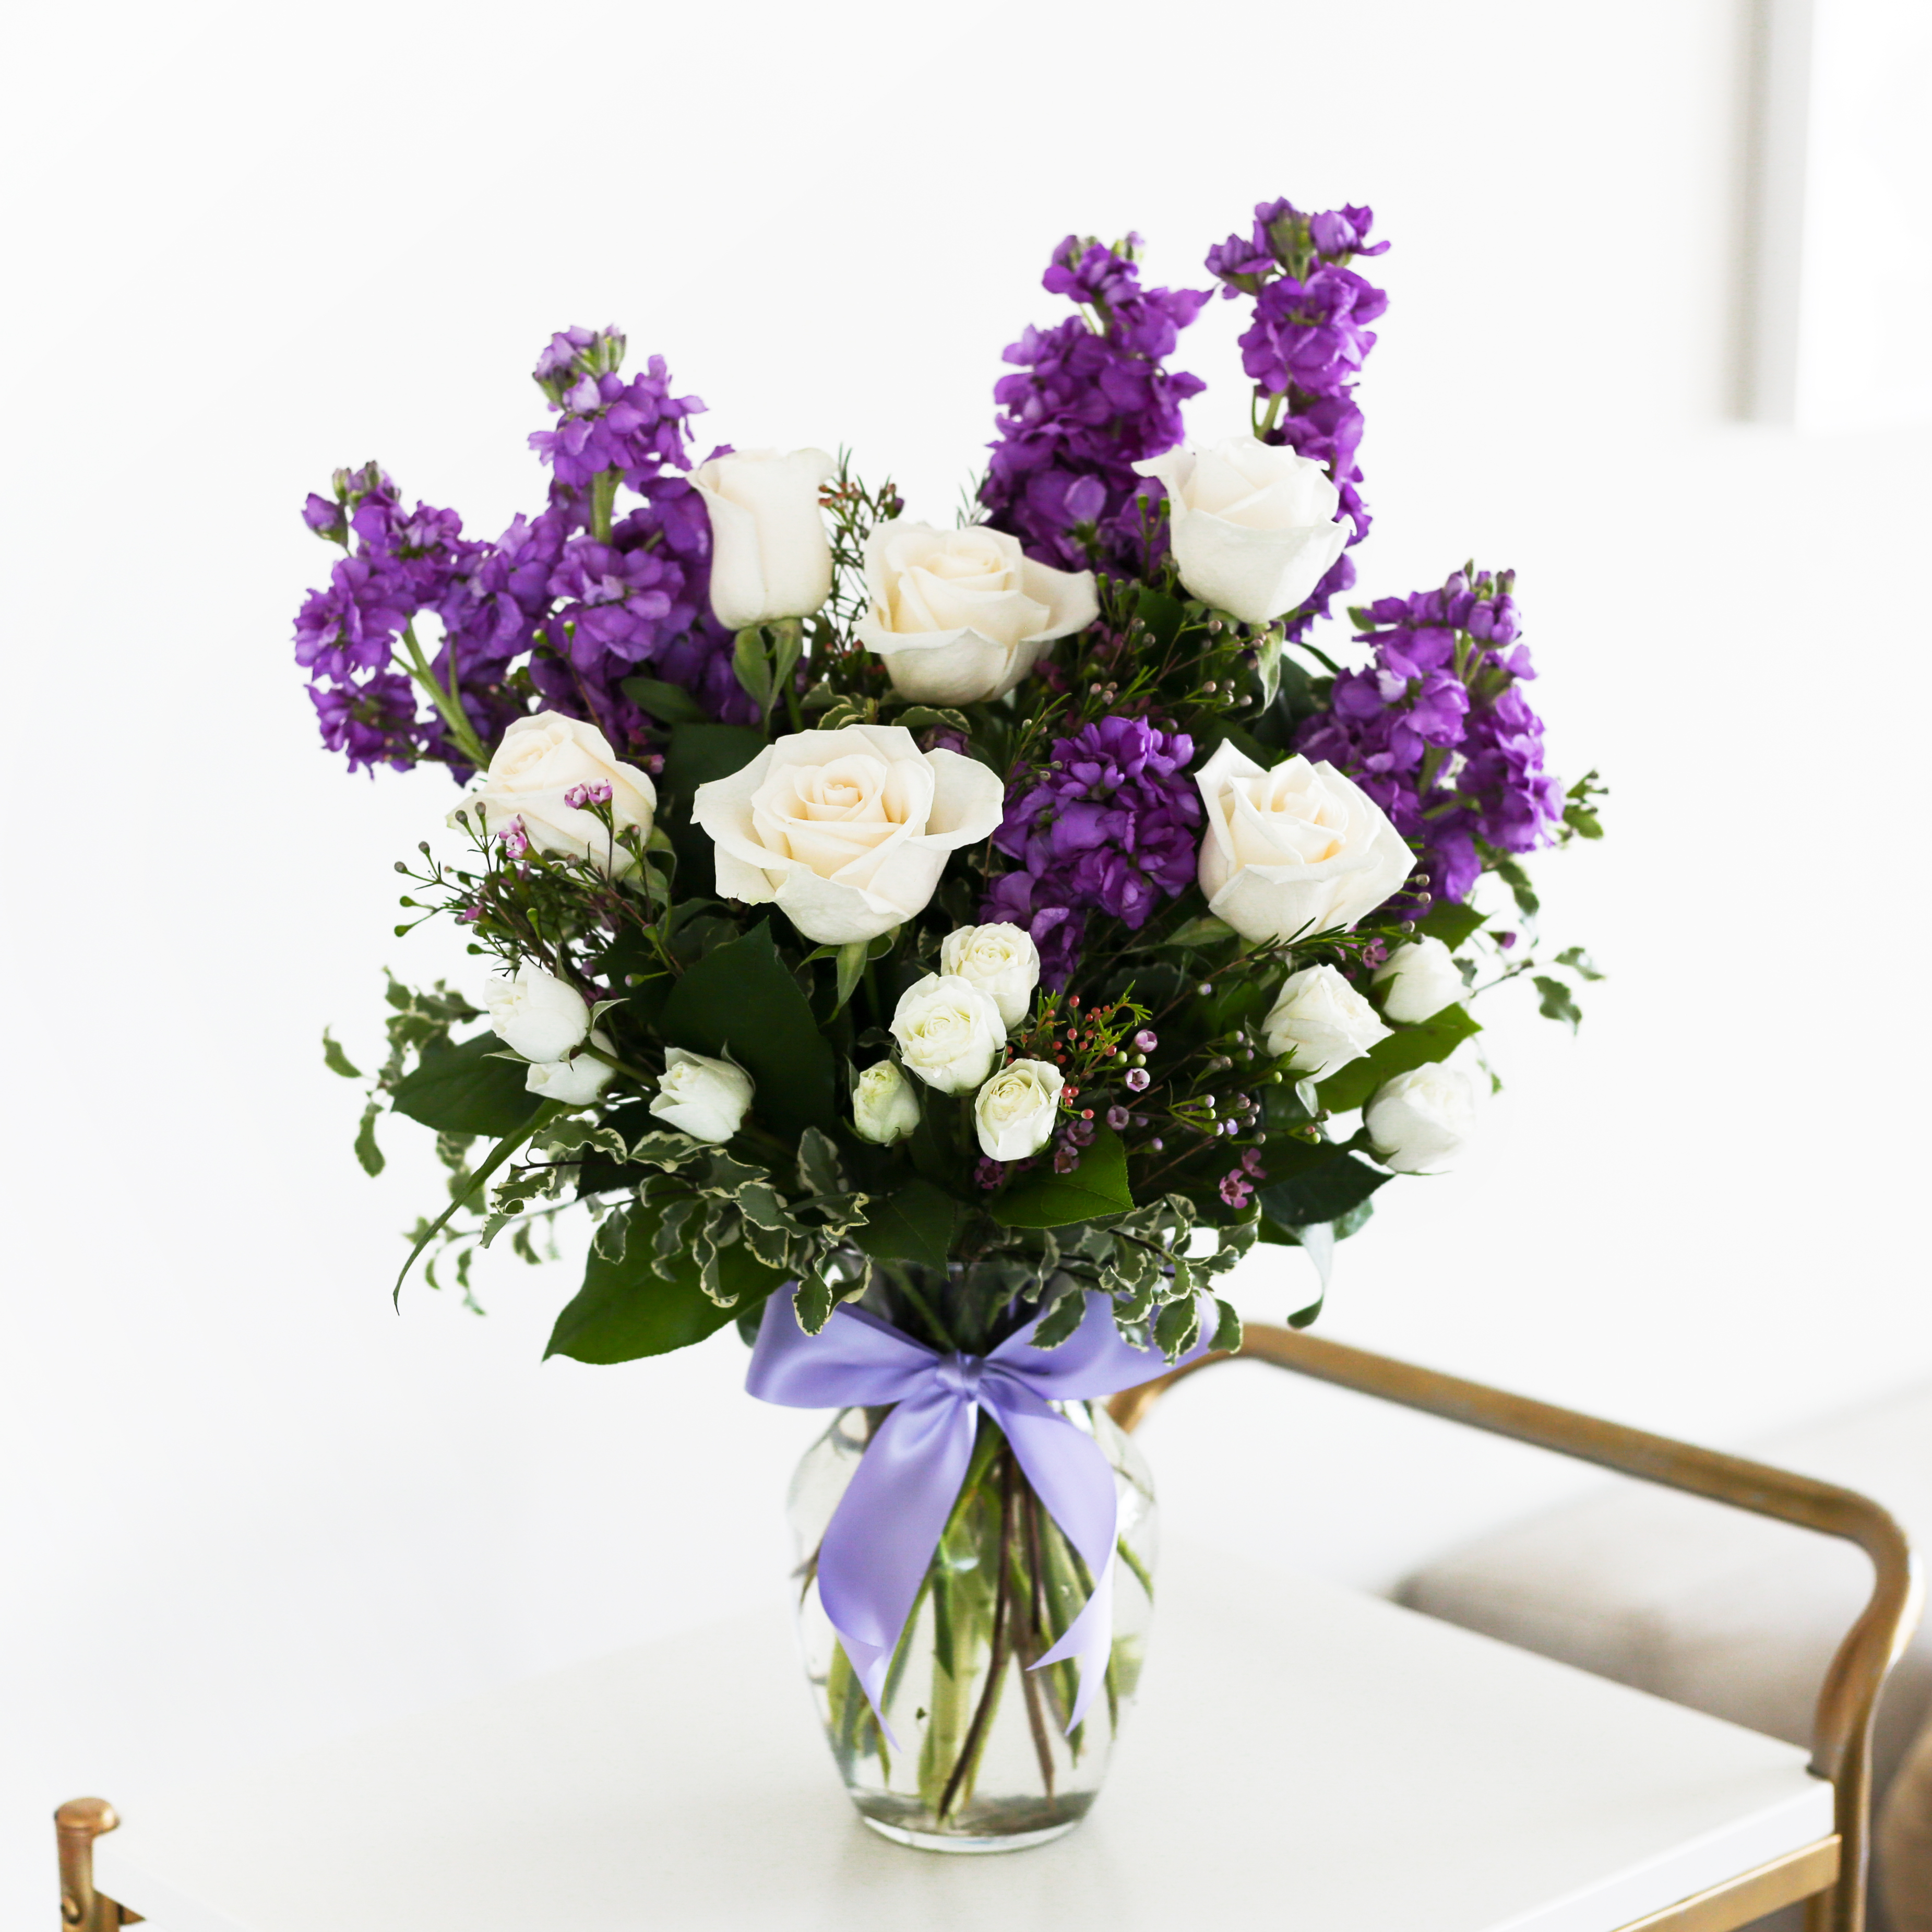 white roses and lavender stock in vase with purple bow